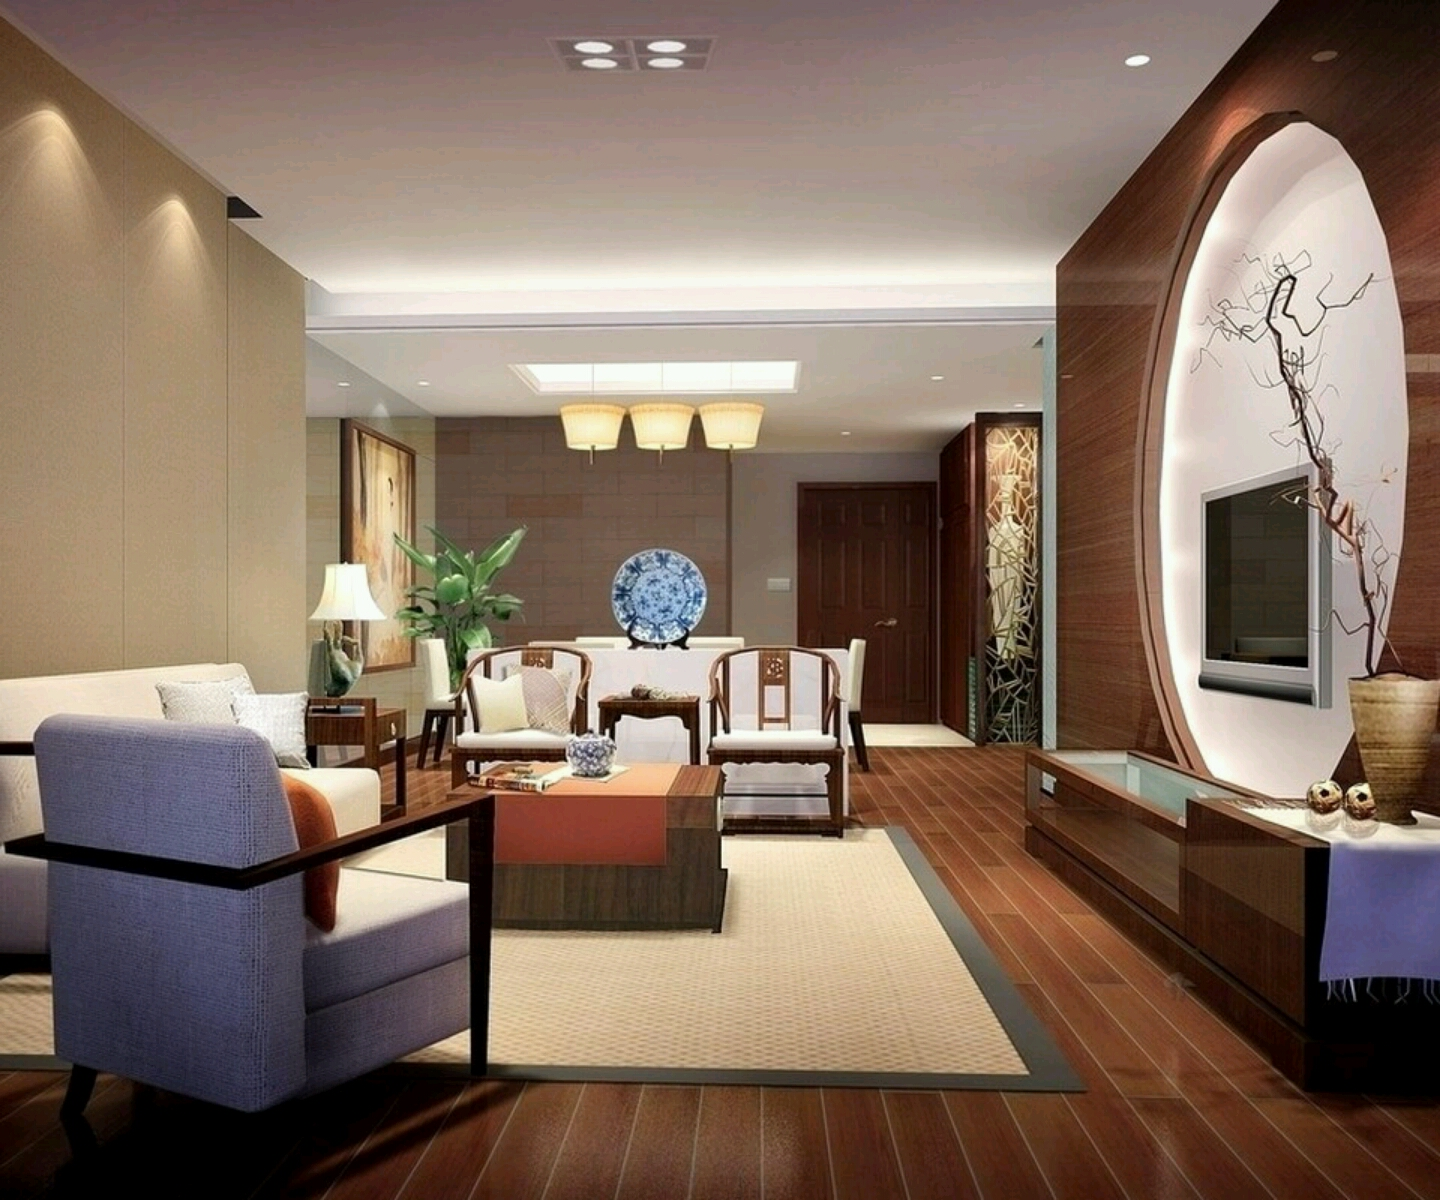 Luxury Homes Interior Decoration Living Room Designs Ideas: Luxury Homes Interior Decoration Living Room Designs Ideas